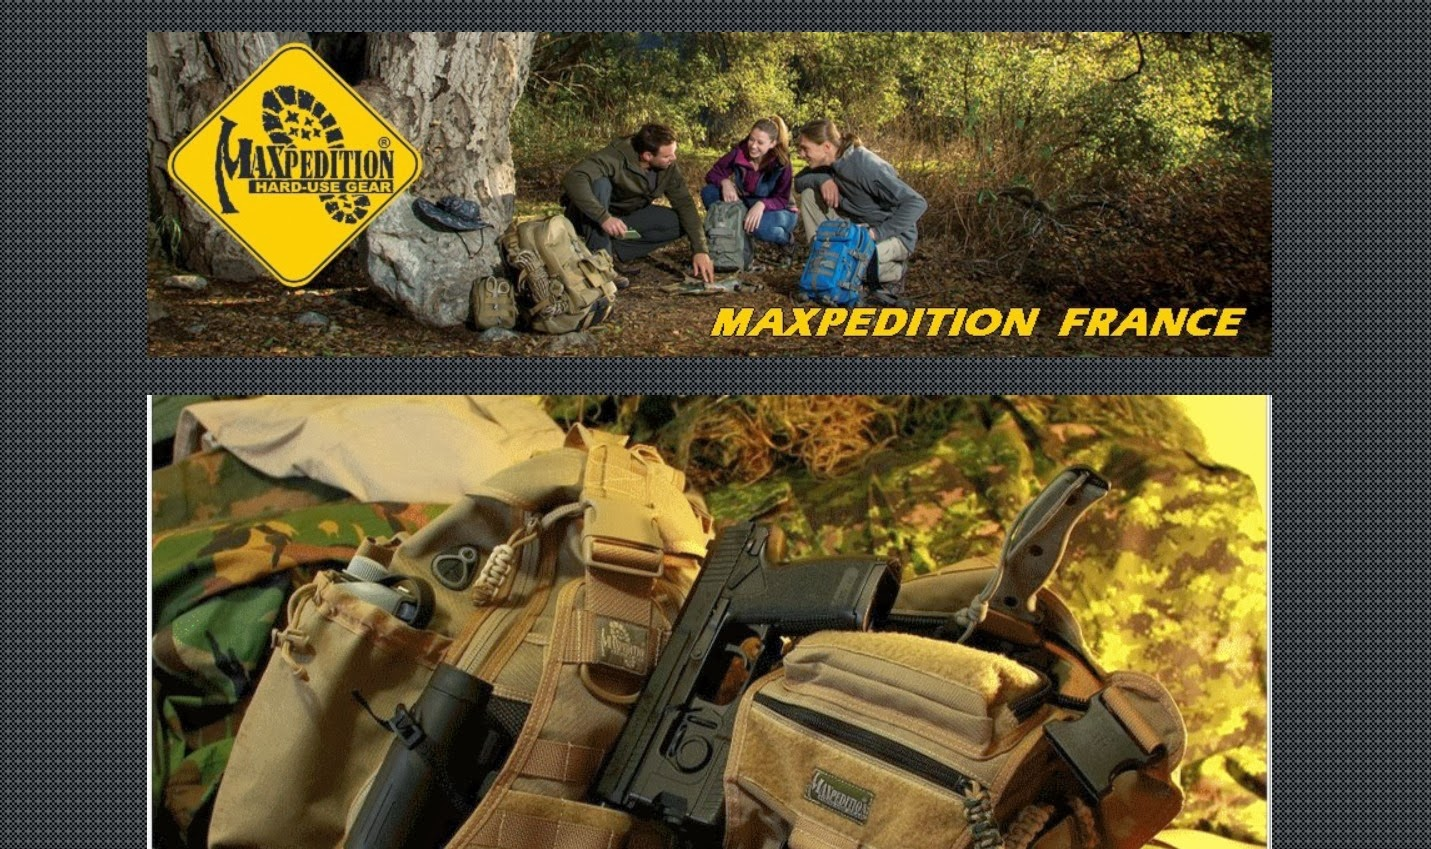 http://www.maxpedition.fr/